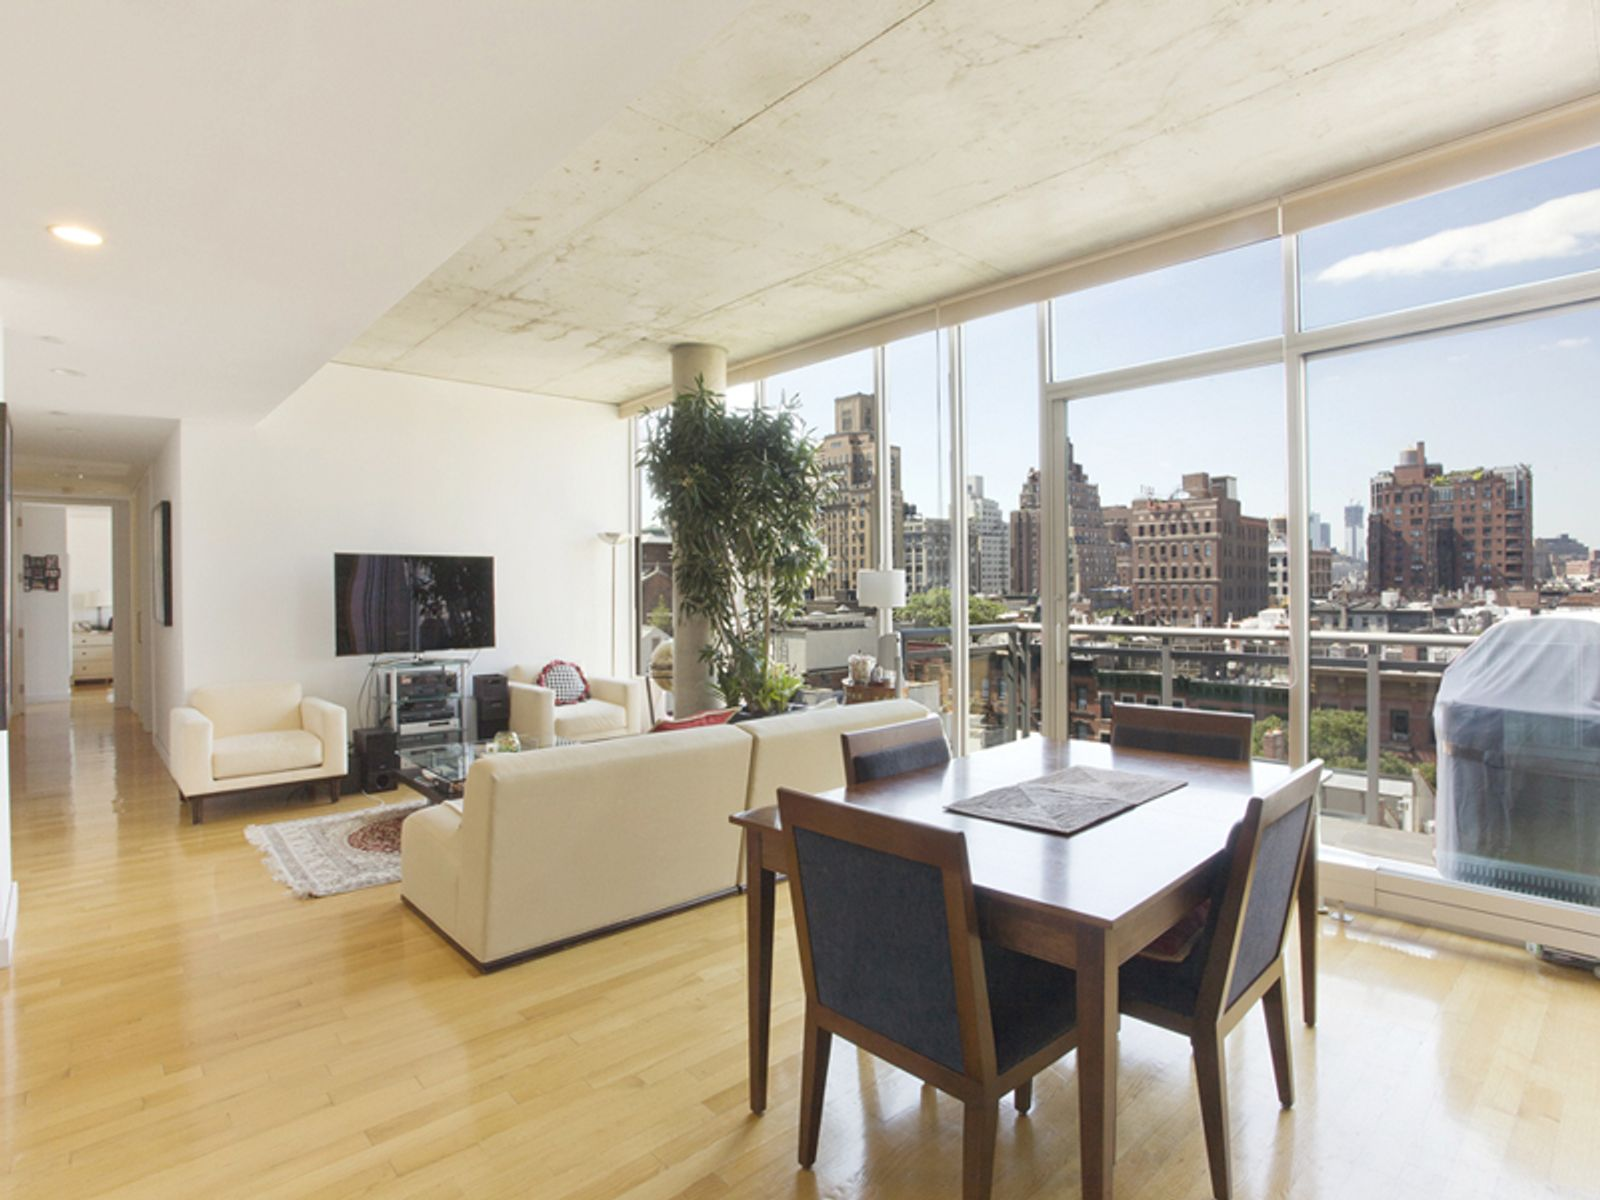 Condo Loft, 246 West 17th Street, 7C, New York NY Condominium - New York City Real Estate